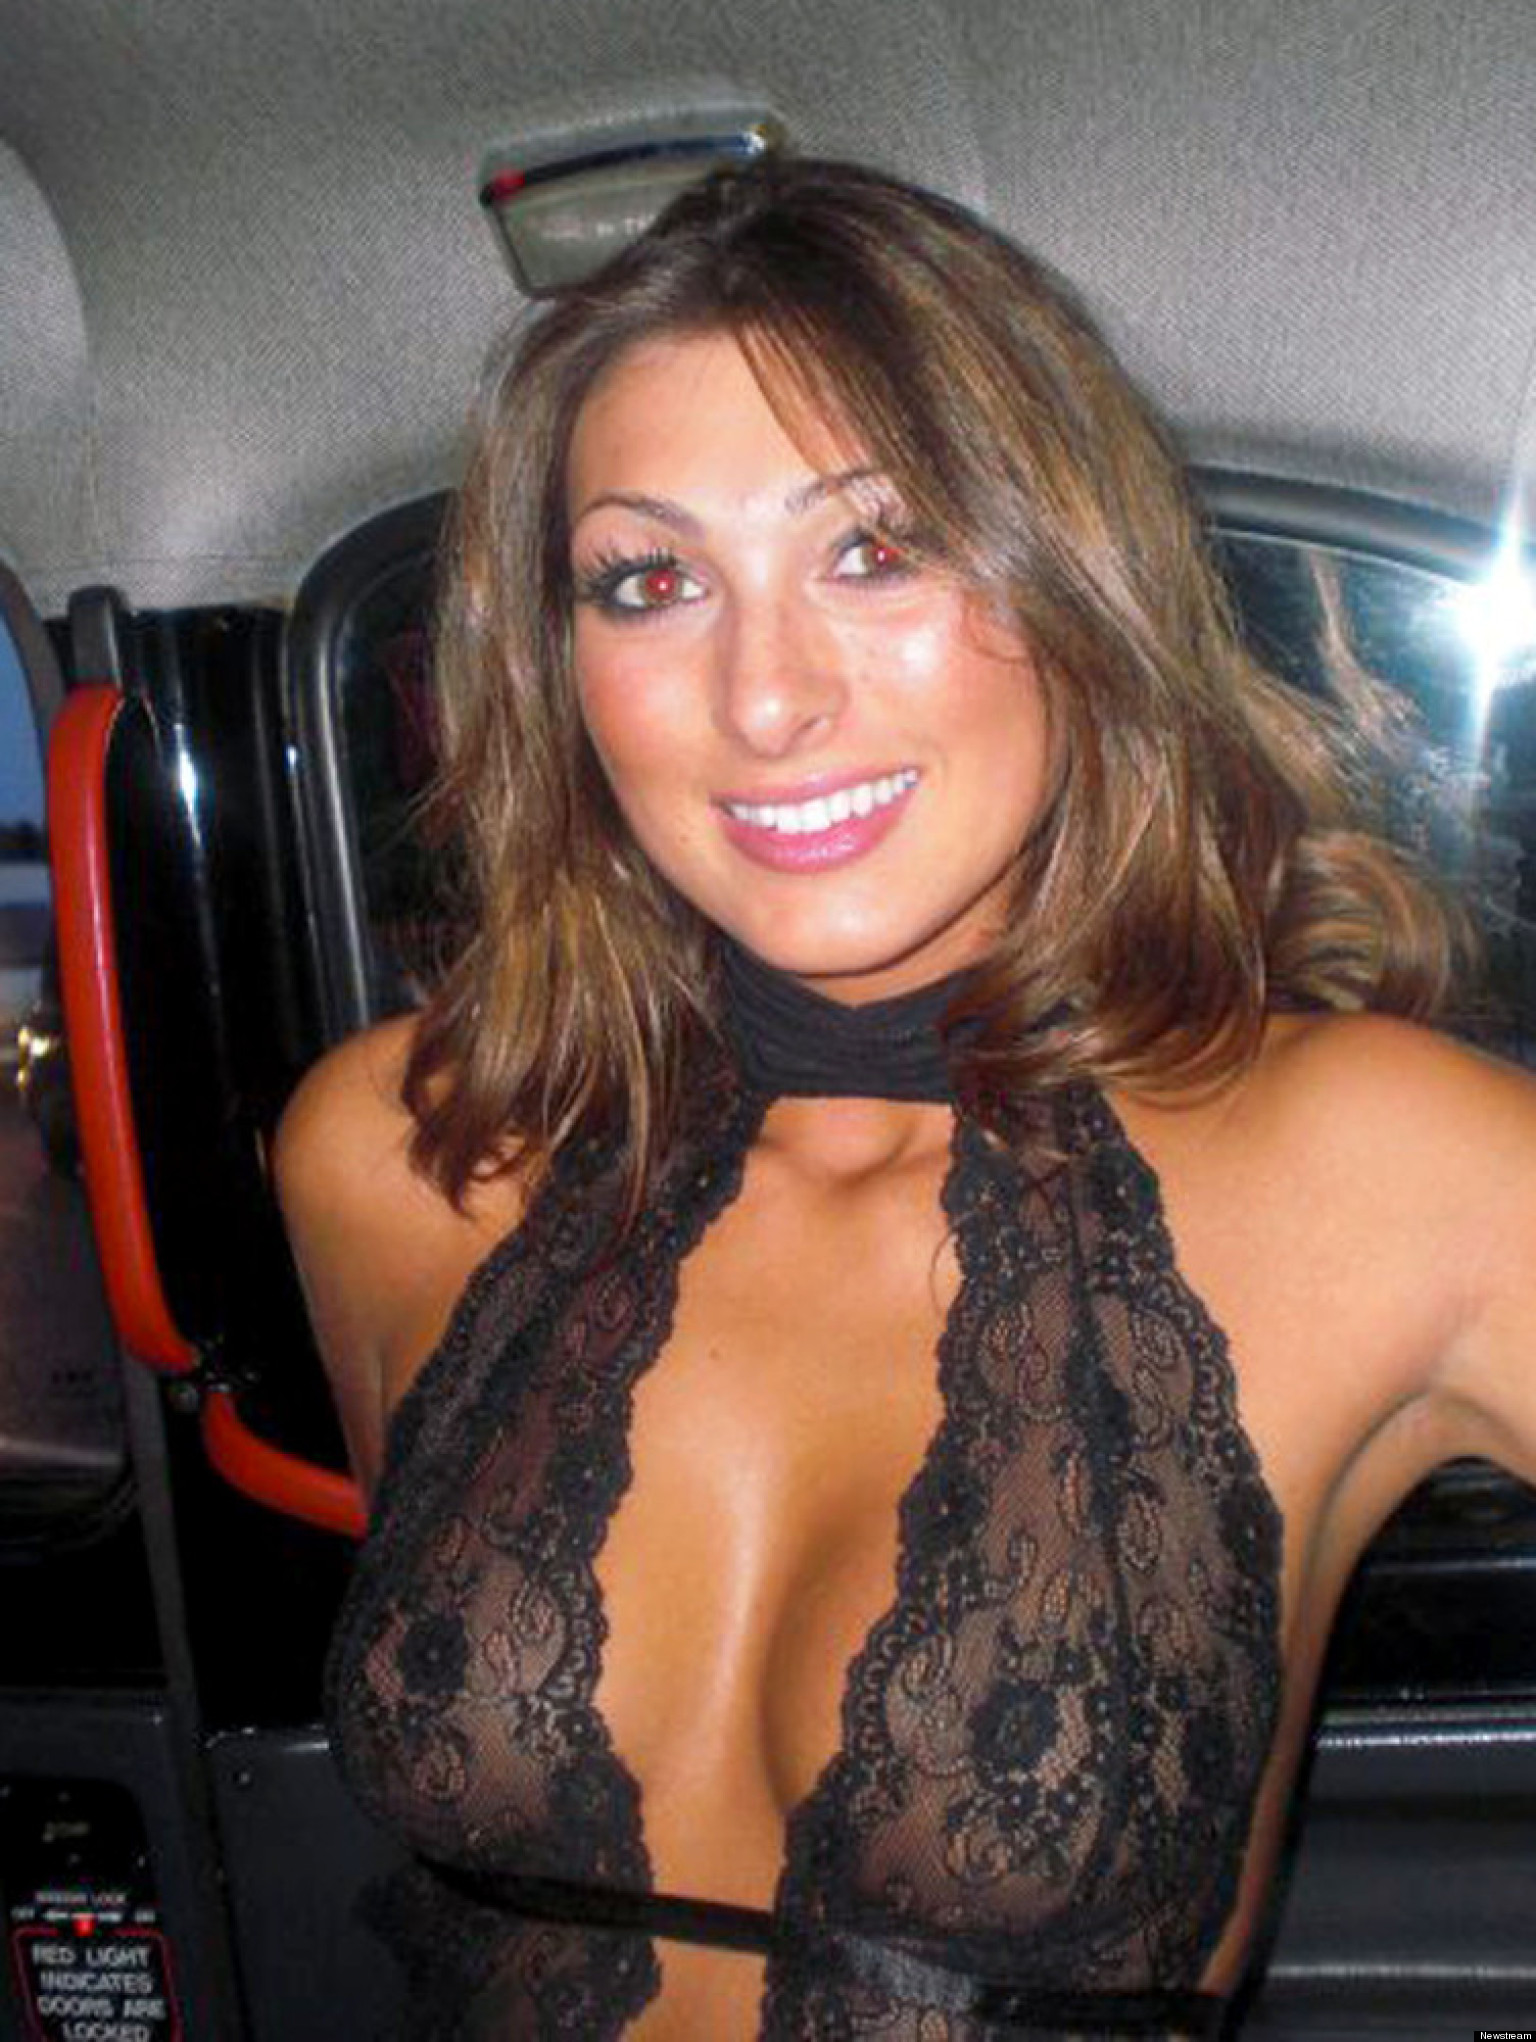 The Apprentice Candidate Luisa Zissman Reportedly Took Part In Se